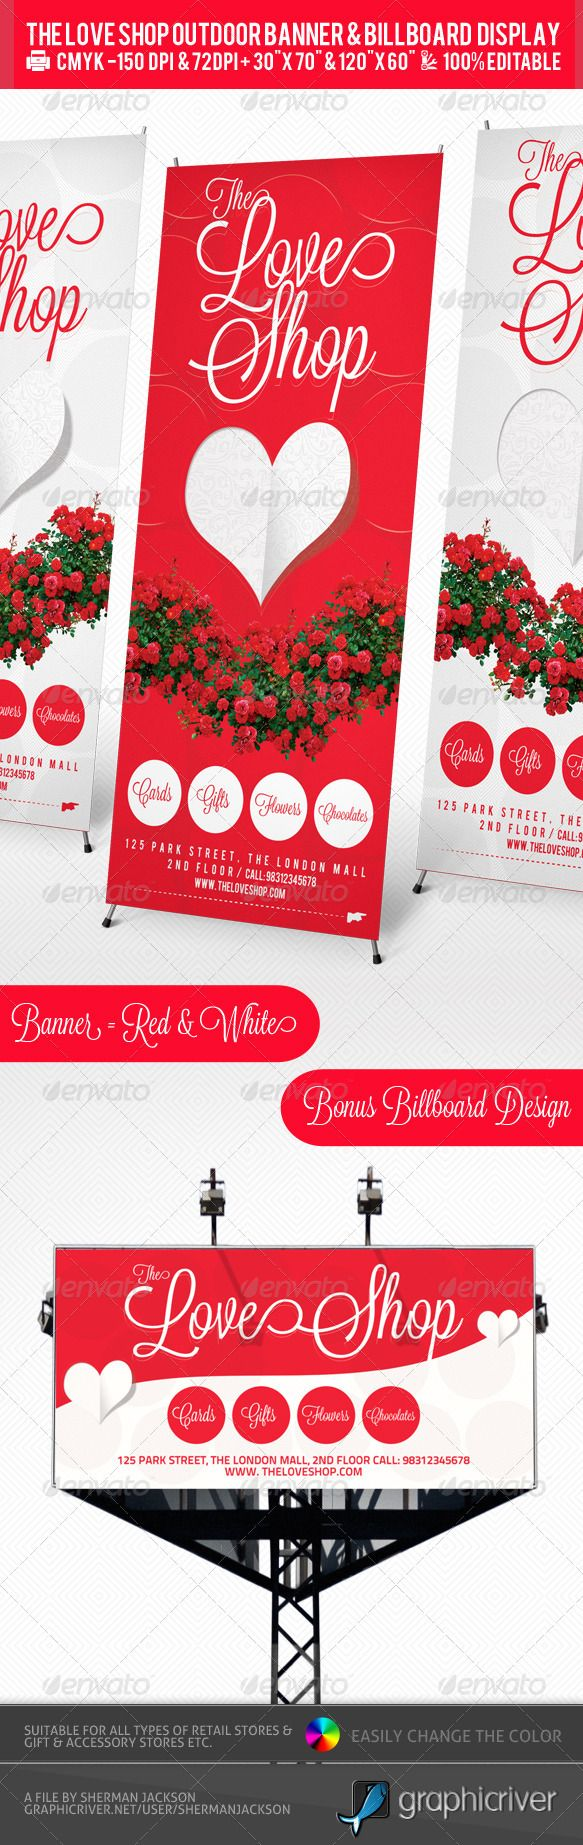 store sign templates